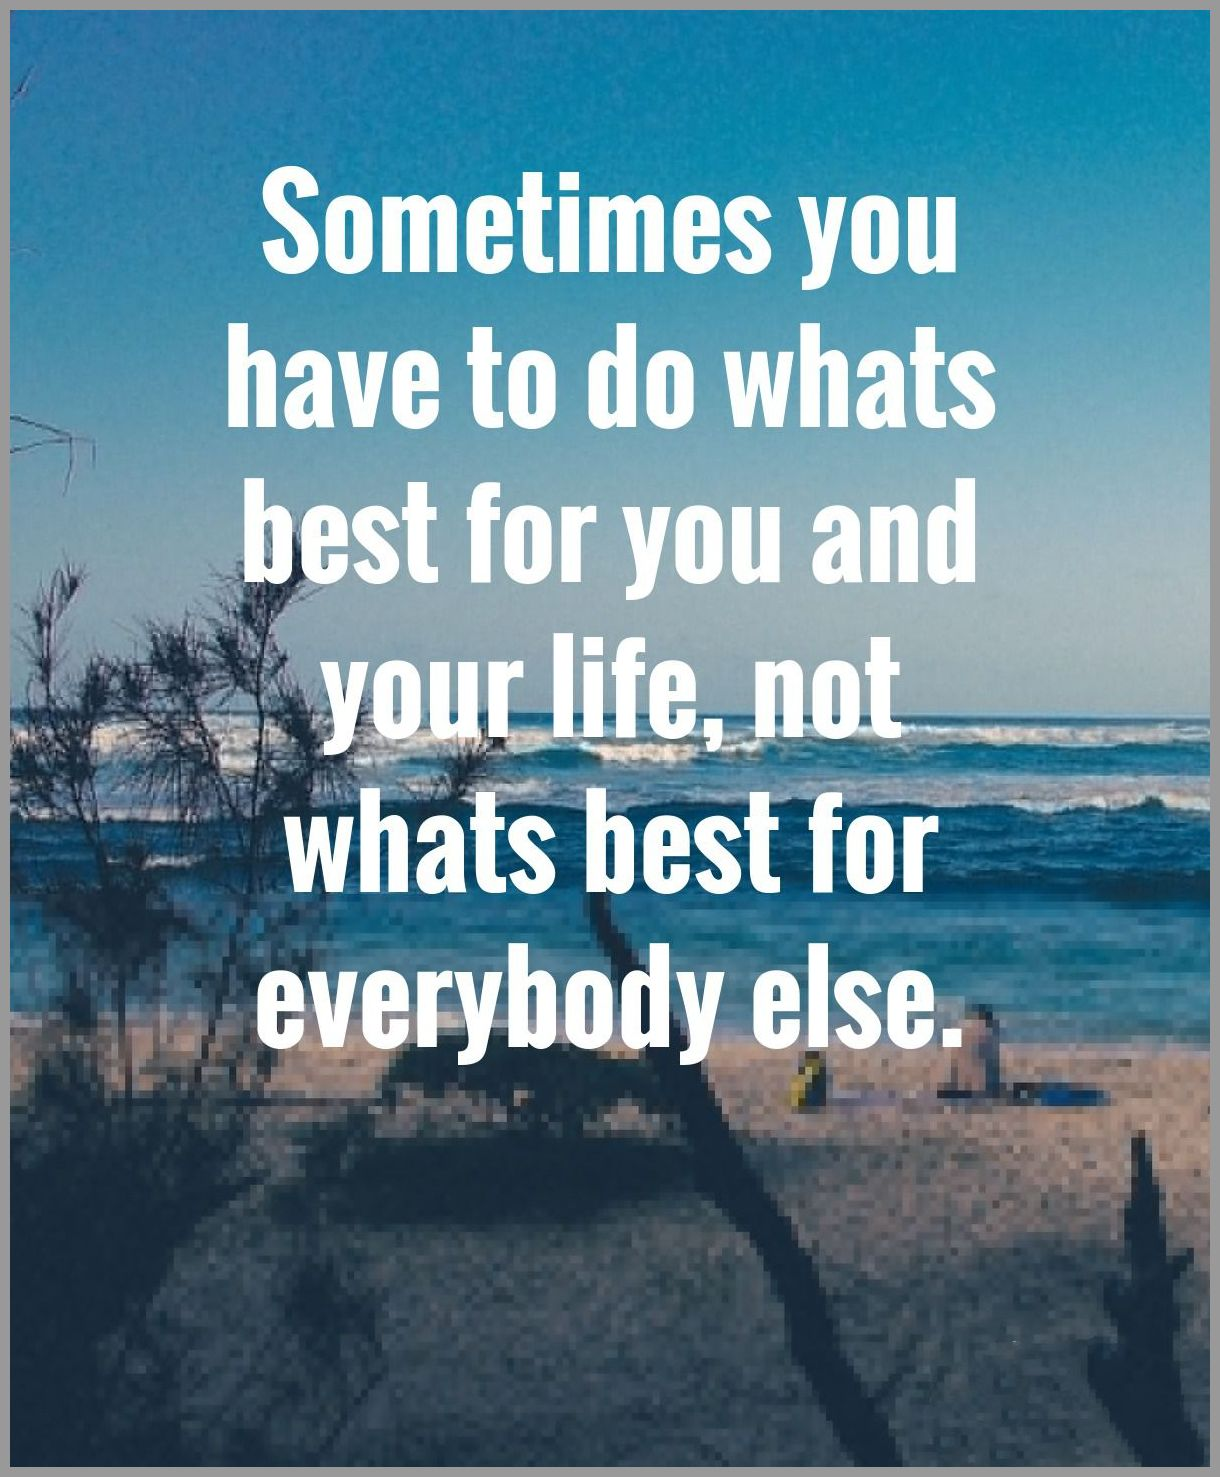 Sometimes you have to do whats best for you and your life not whats best for everybody else - Sometimes you have to do whats best for you and your life not whats best for everybody else